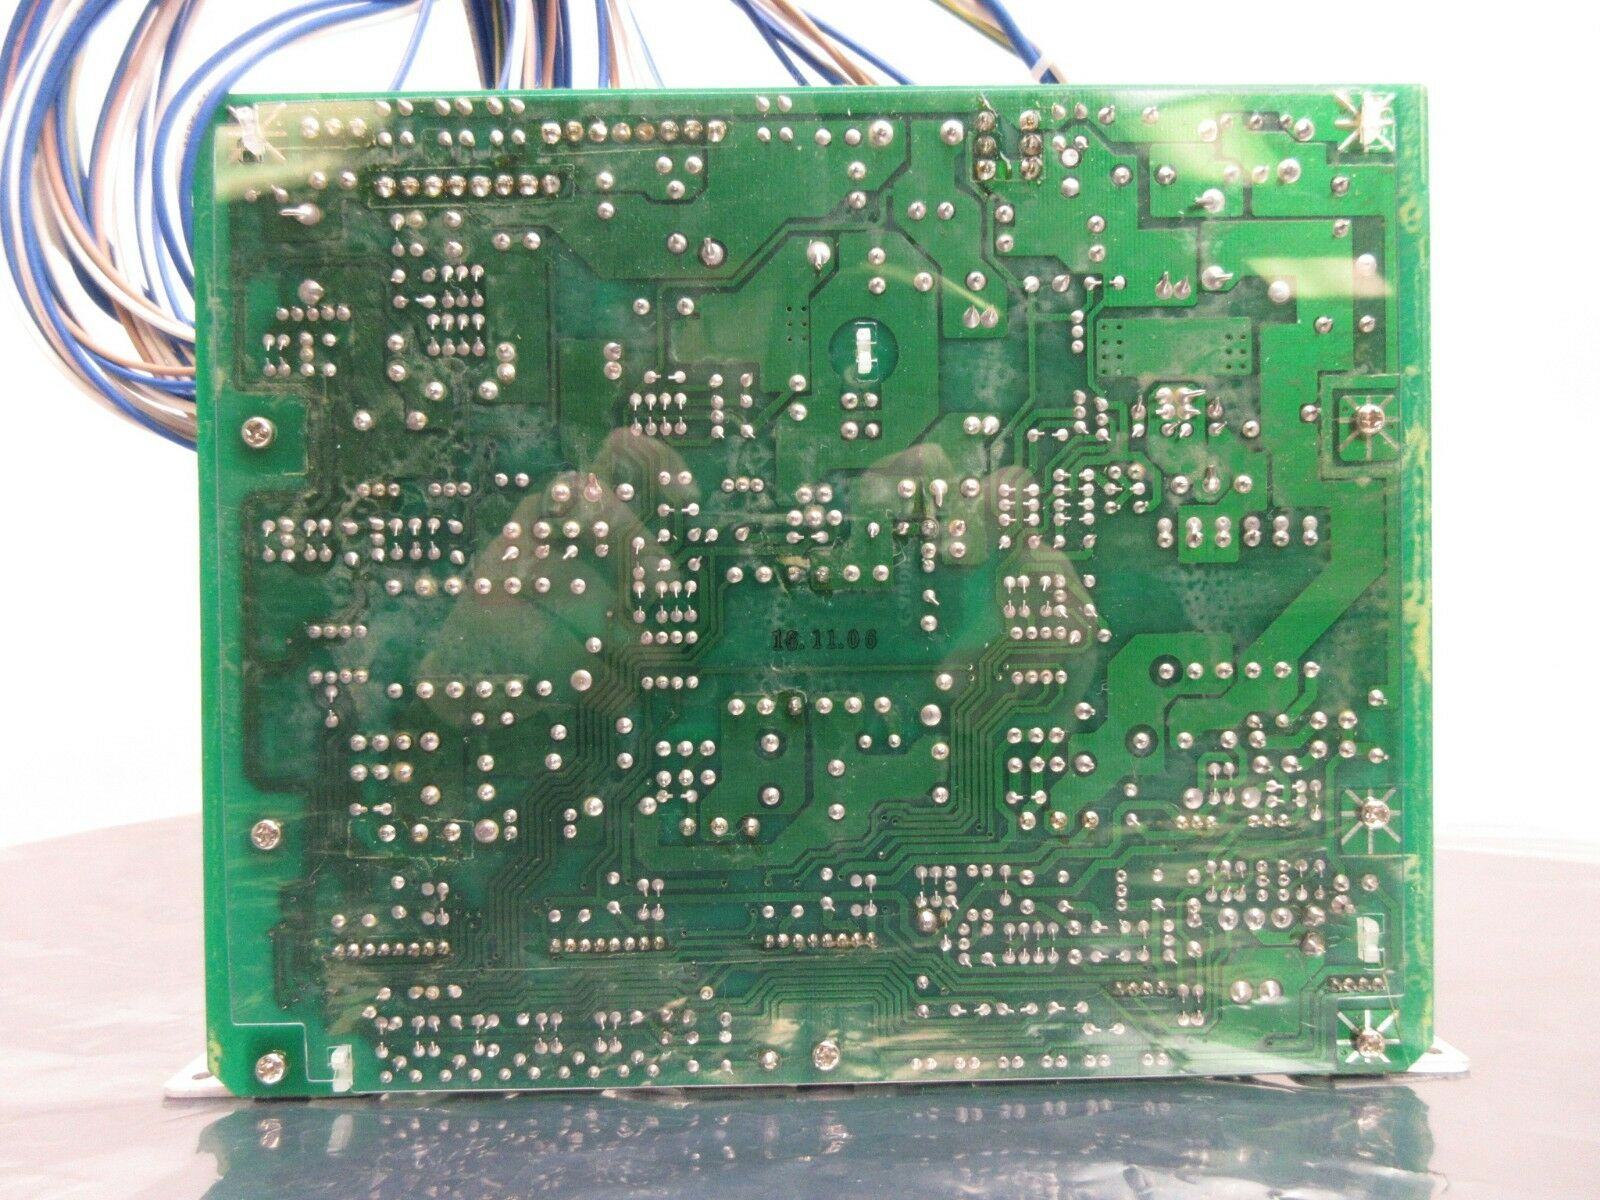 Tec Izu Electronics VDBC0002202 Power Supply Board PCB Nikon NSR-S307E Used